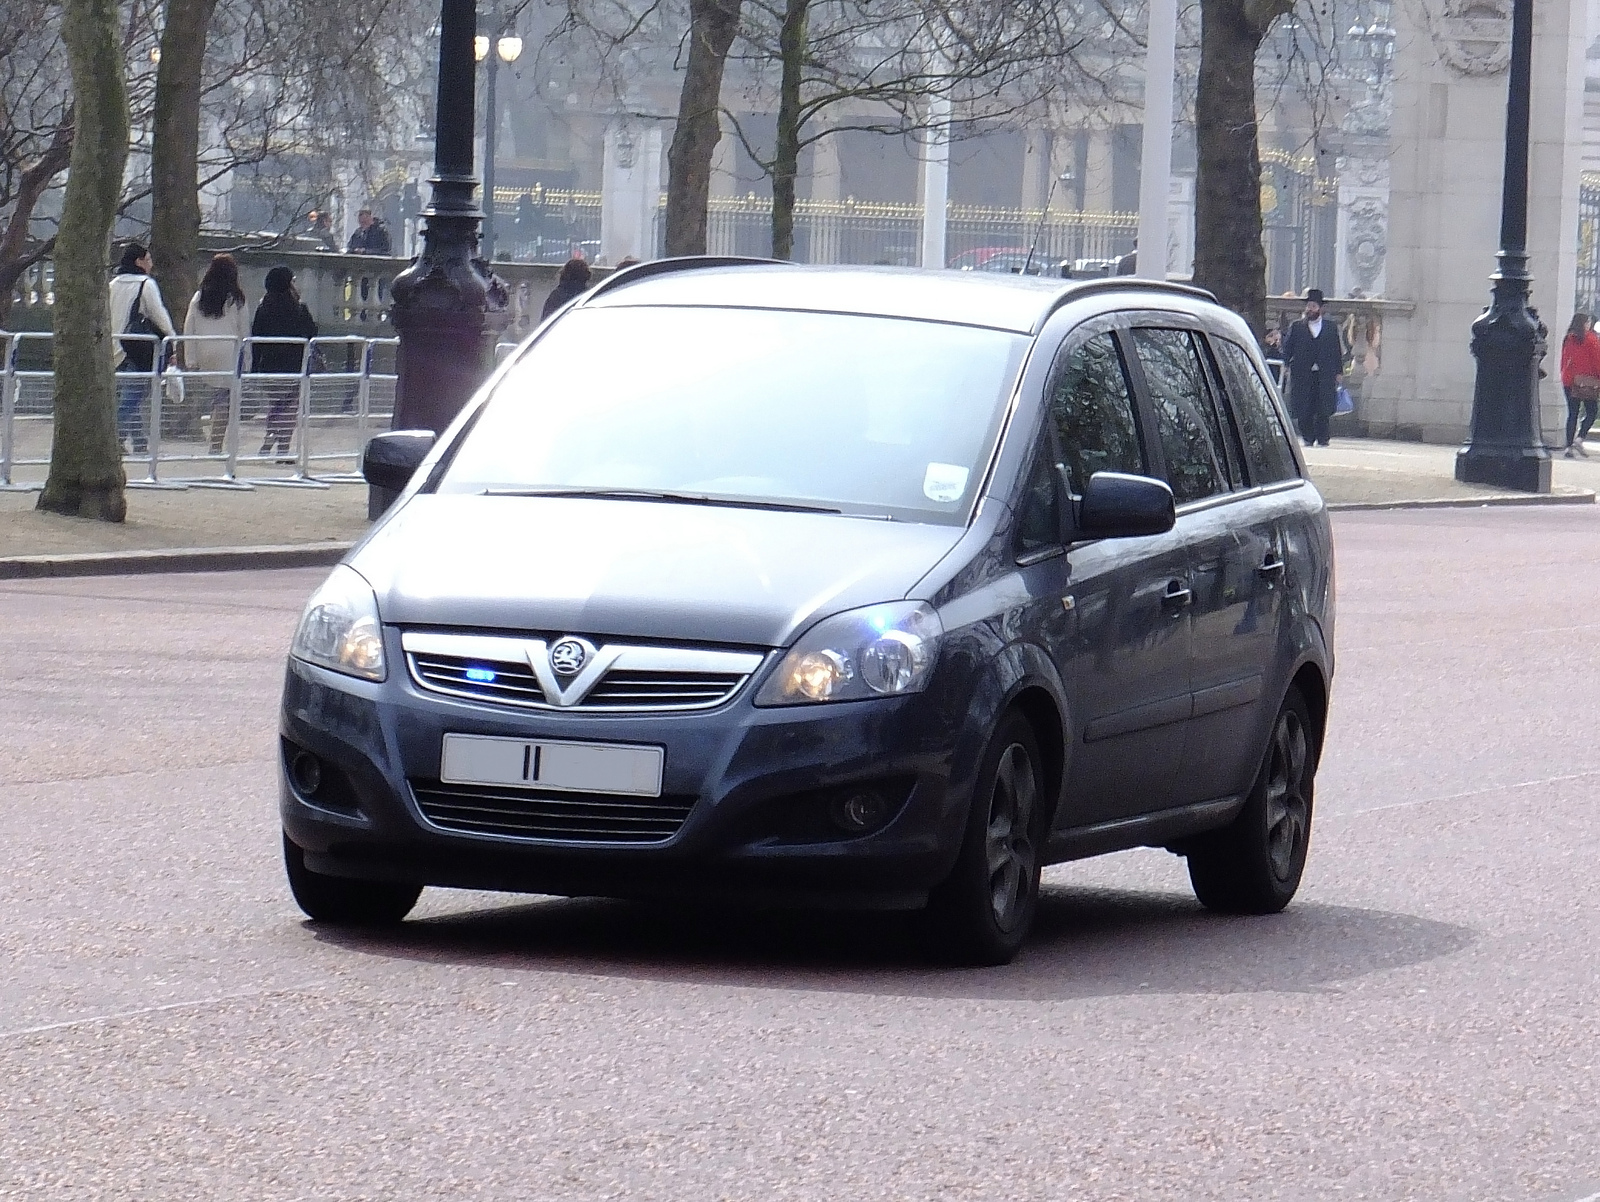 Metropolitan Police - Unmarked Vauxhall Zafira - Robbery Squad ...